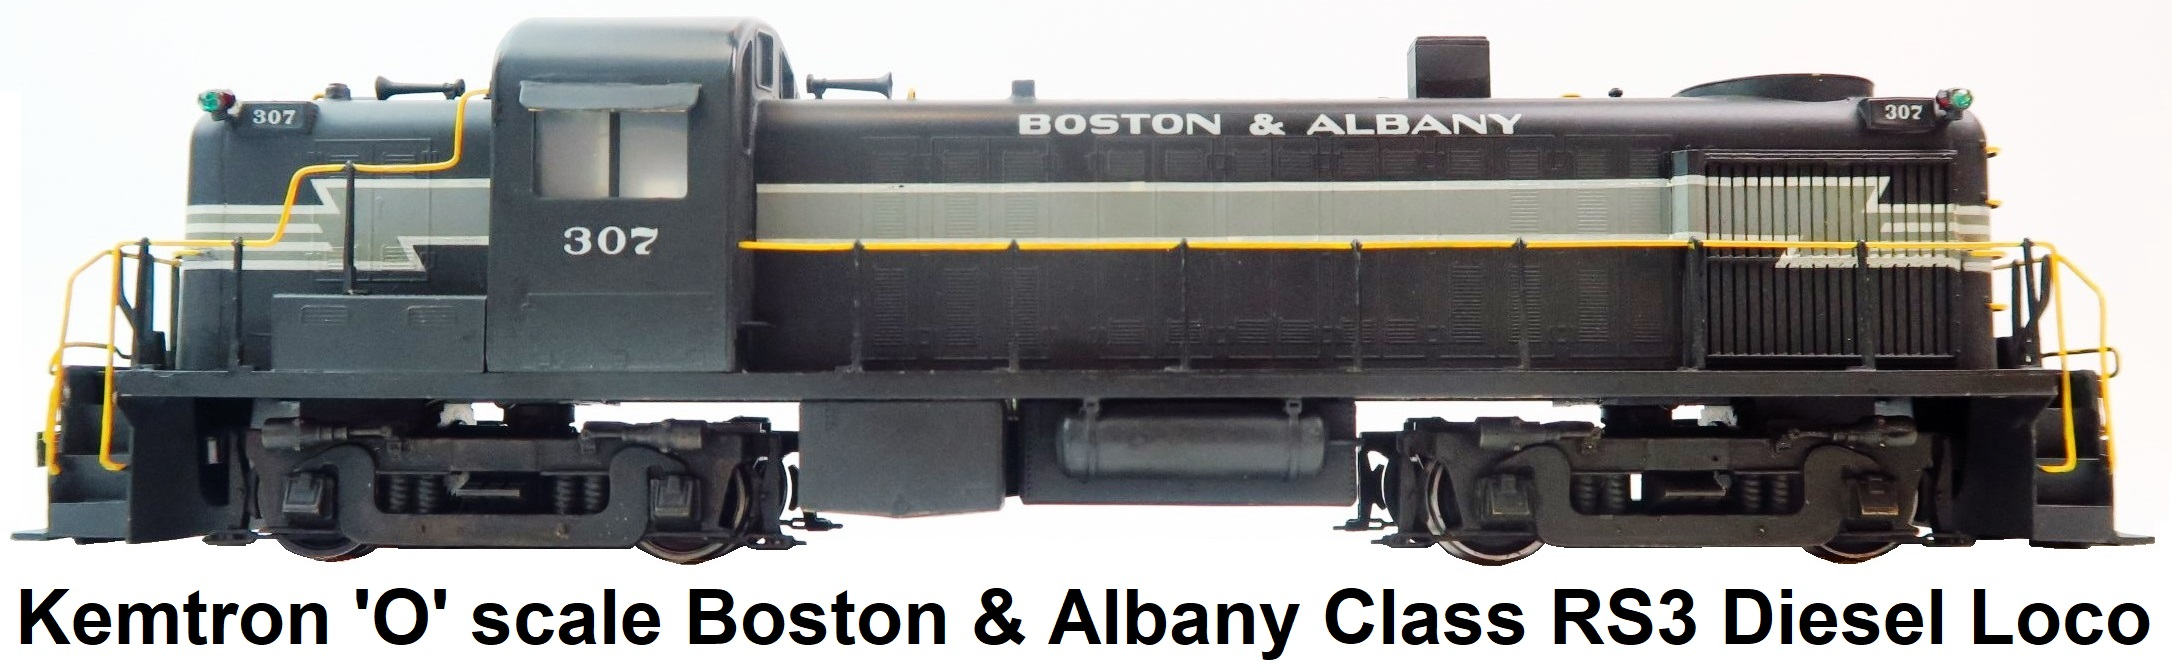 Kemtron 'O' scale Boston & Albany Class RS3 Diesel Locomotive